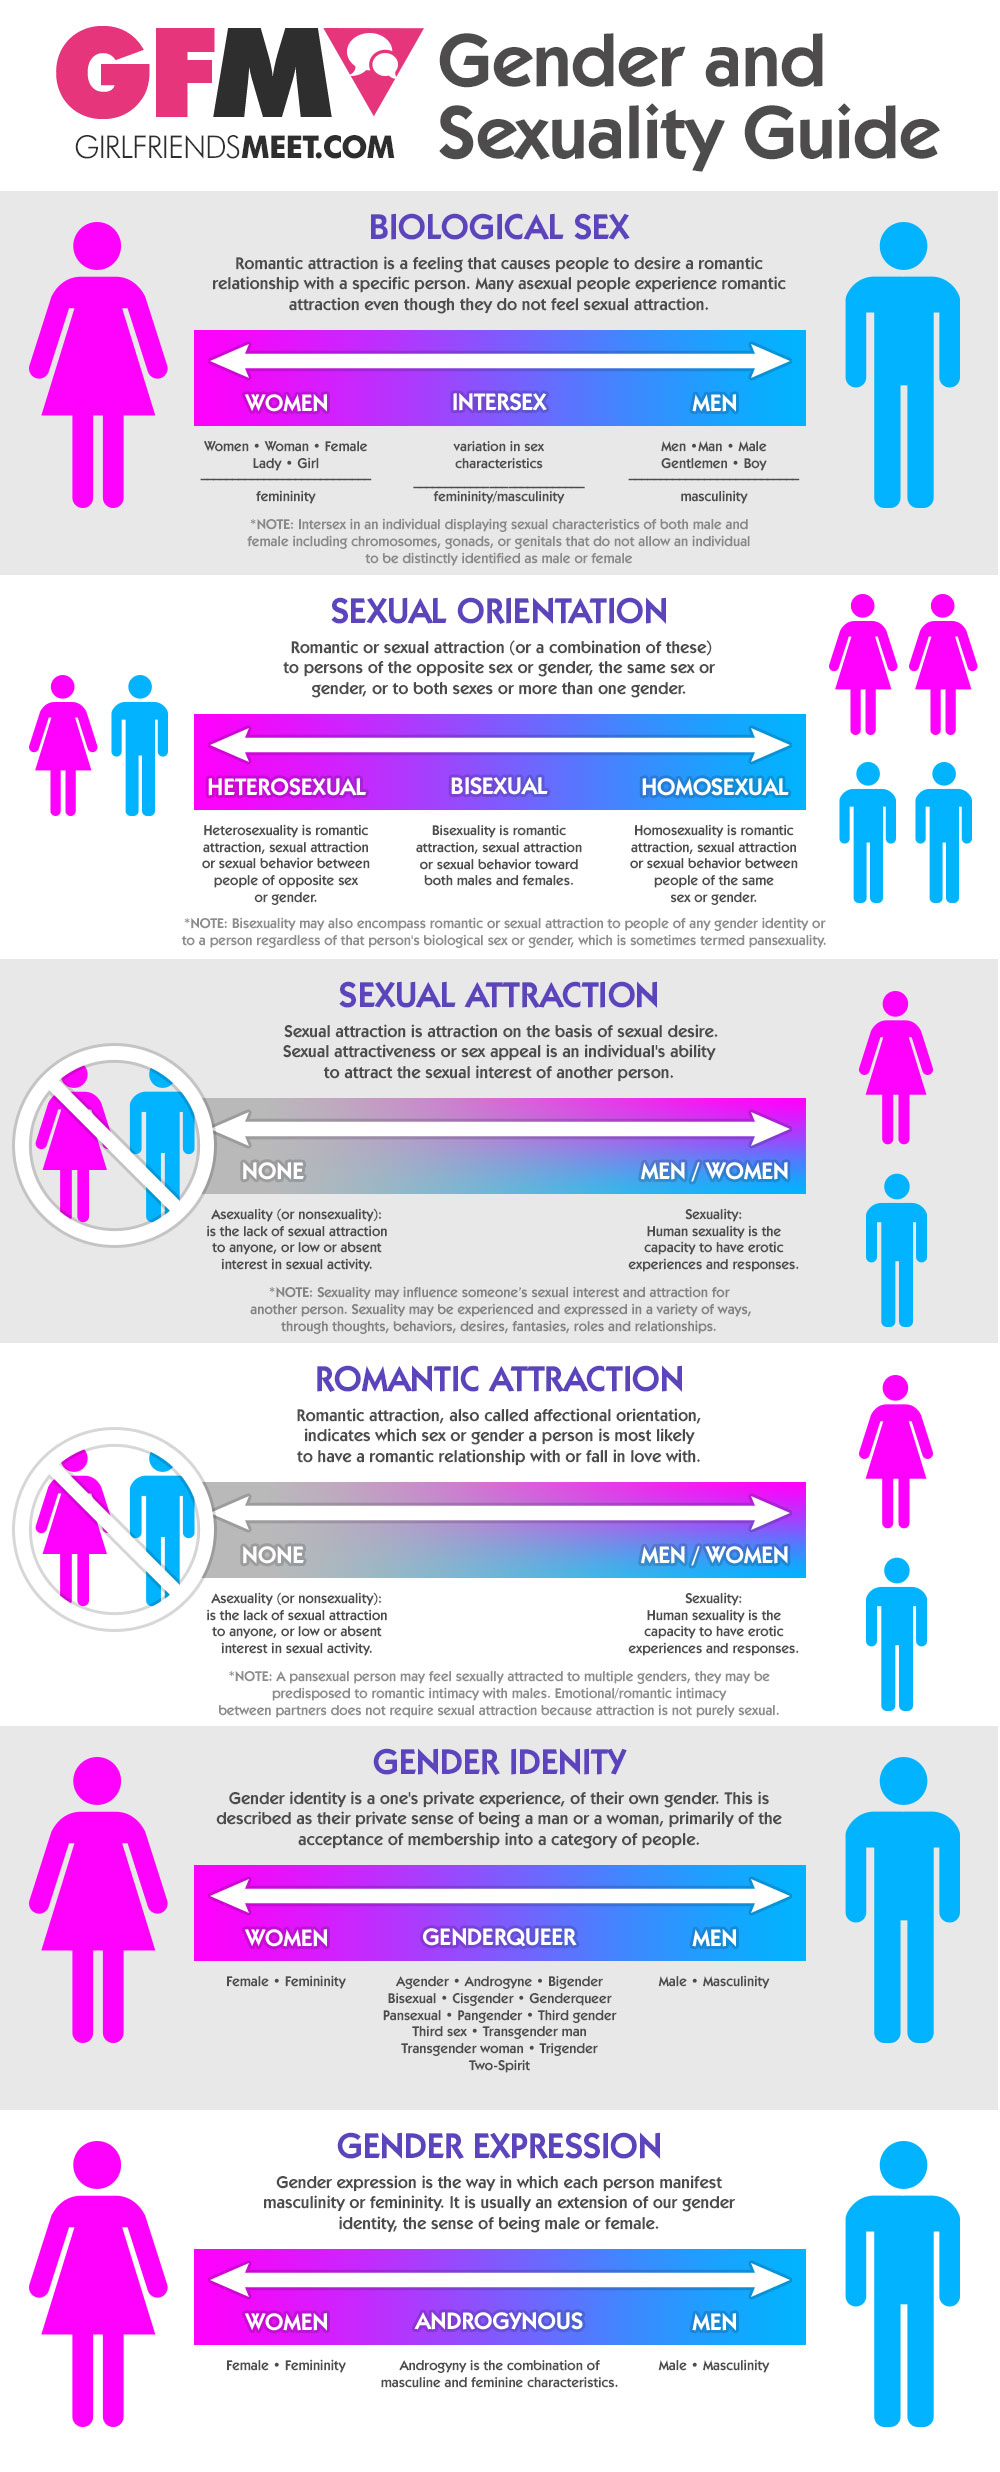 GirlfriendsMeet-Gender-and-Sexuality-Guide-Infographic